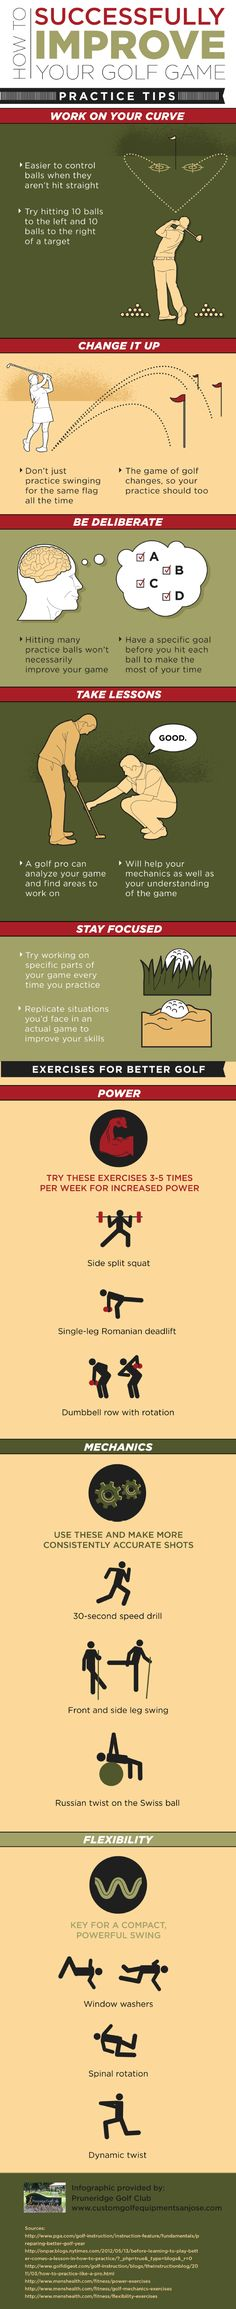 It is easier to control golf balls when they aren't hit straight. That is why it is important to work on your curve! Find more tips for improving your golf game by reading through this infographic from a golf club in San Jose.